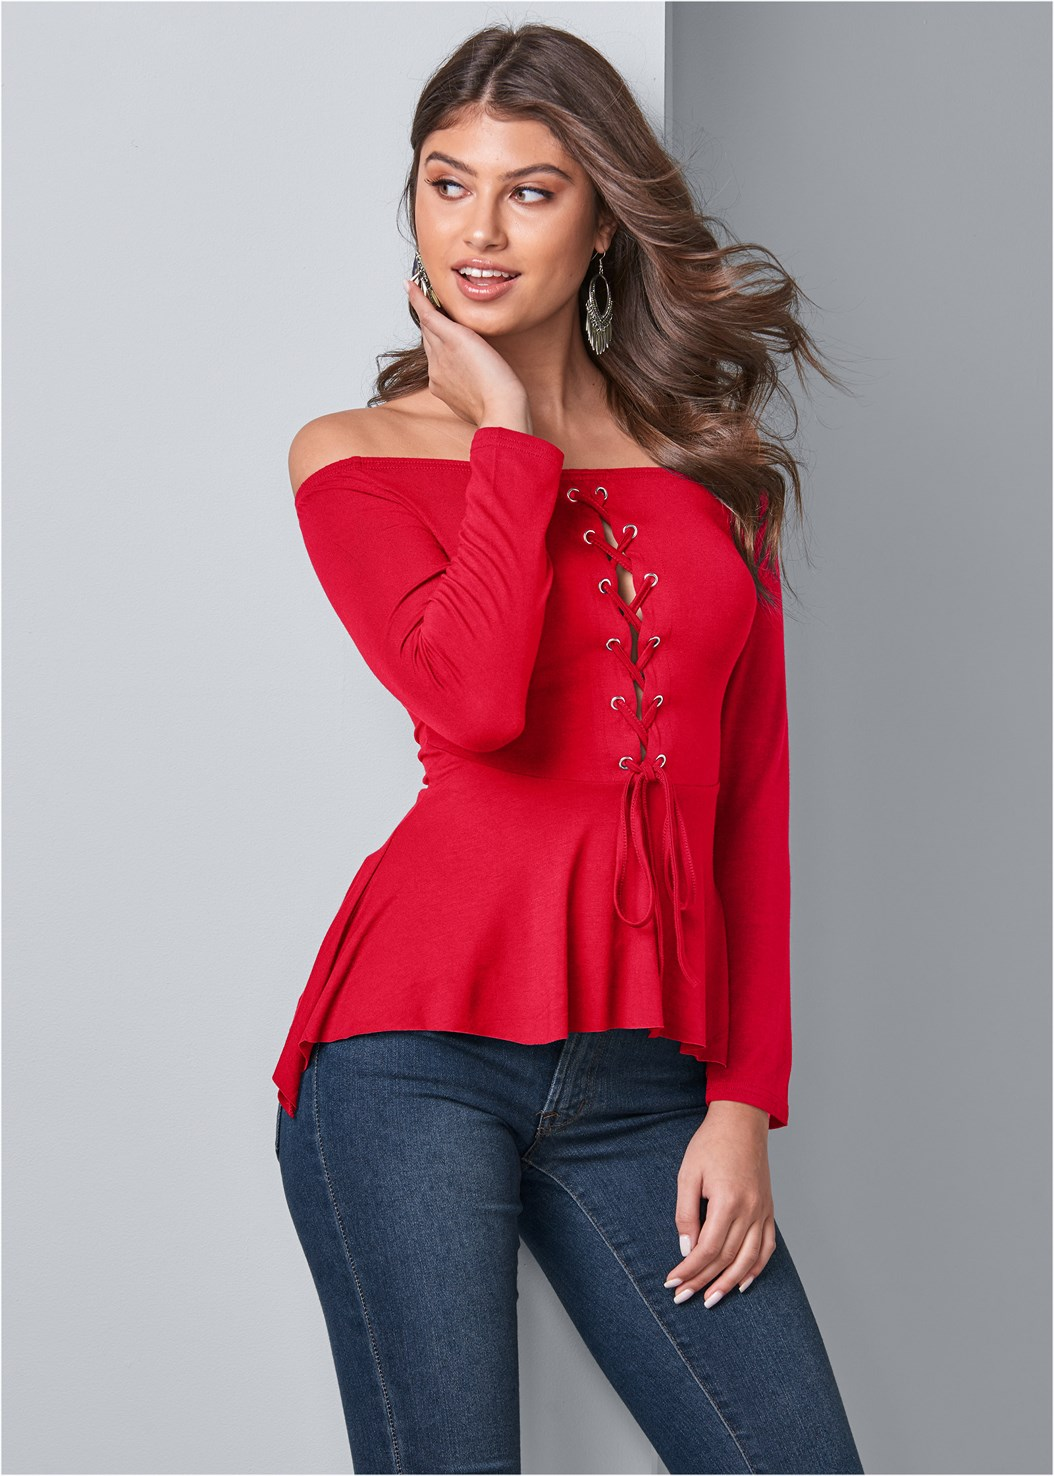 Lace Up Peplum Top,Mid Rise Color Skinny Jeans,Confidence Invisible Bra,Open Heel Booties